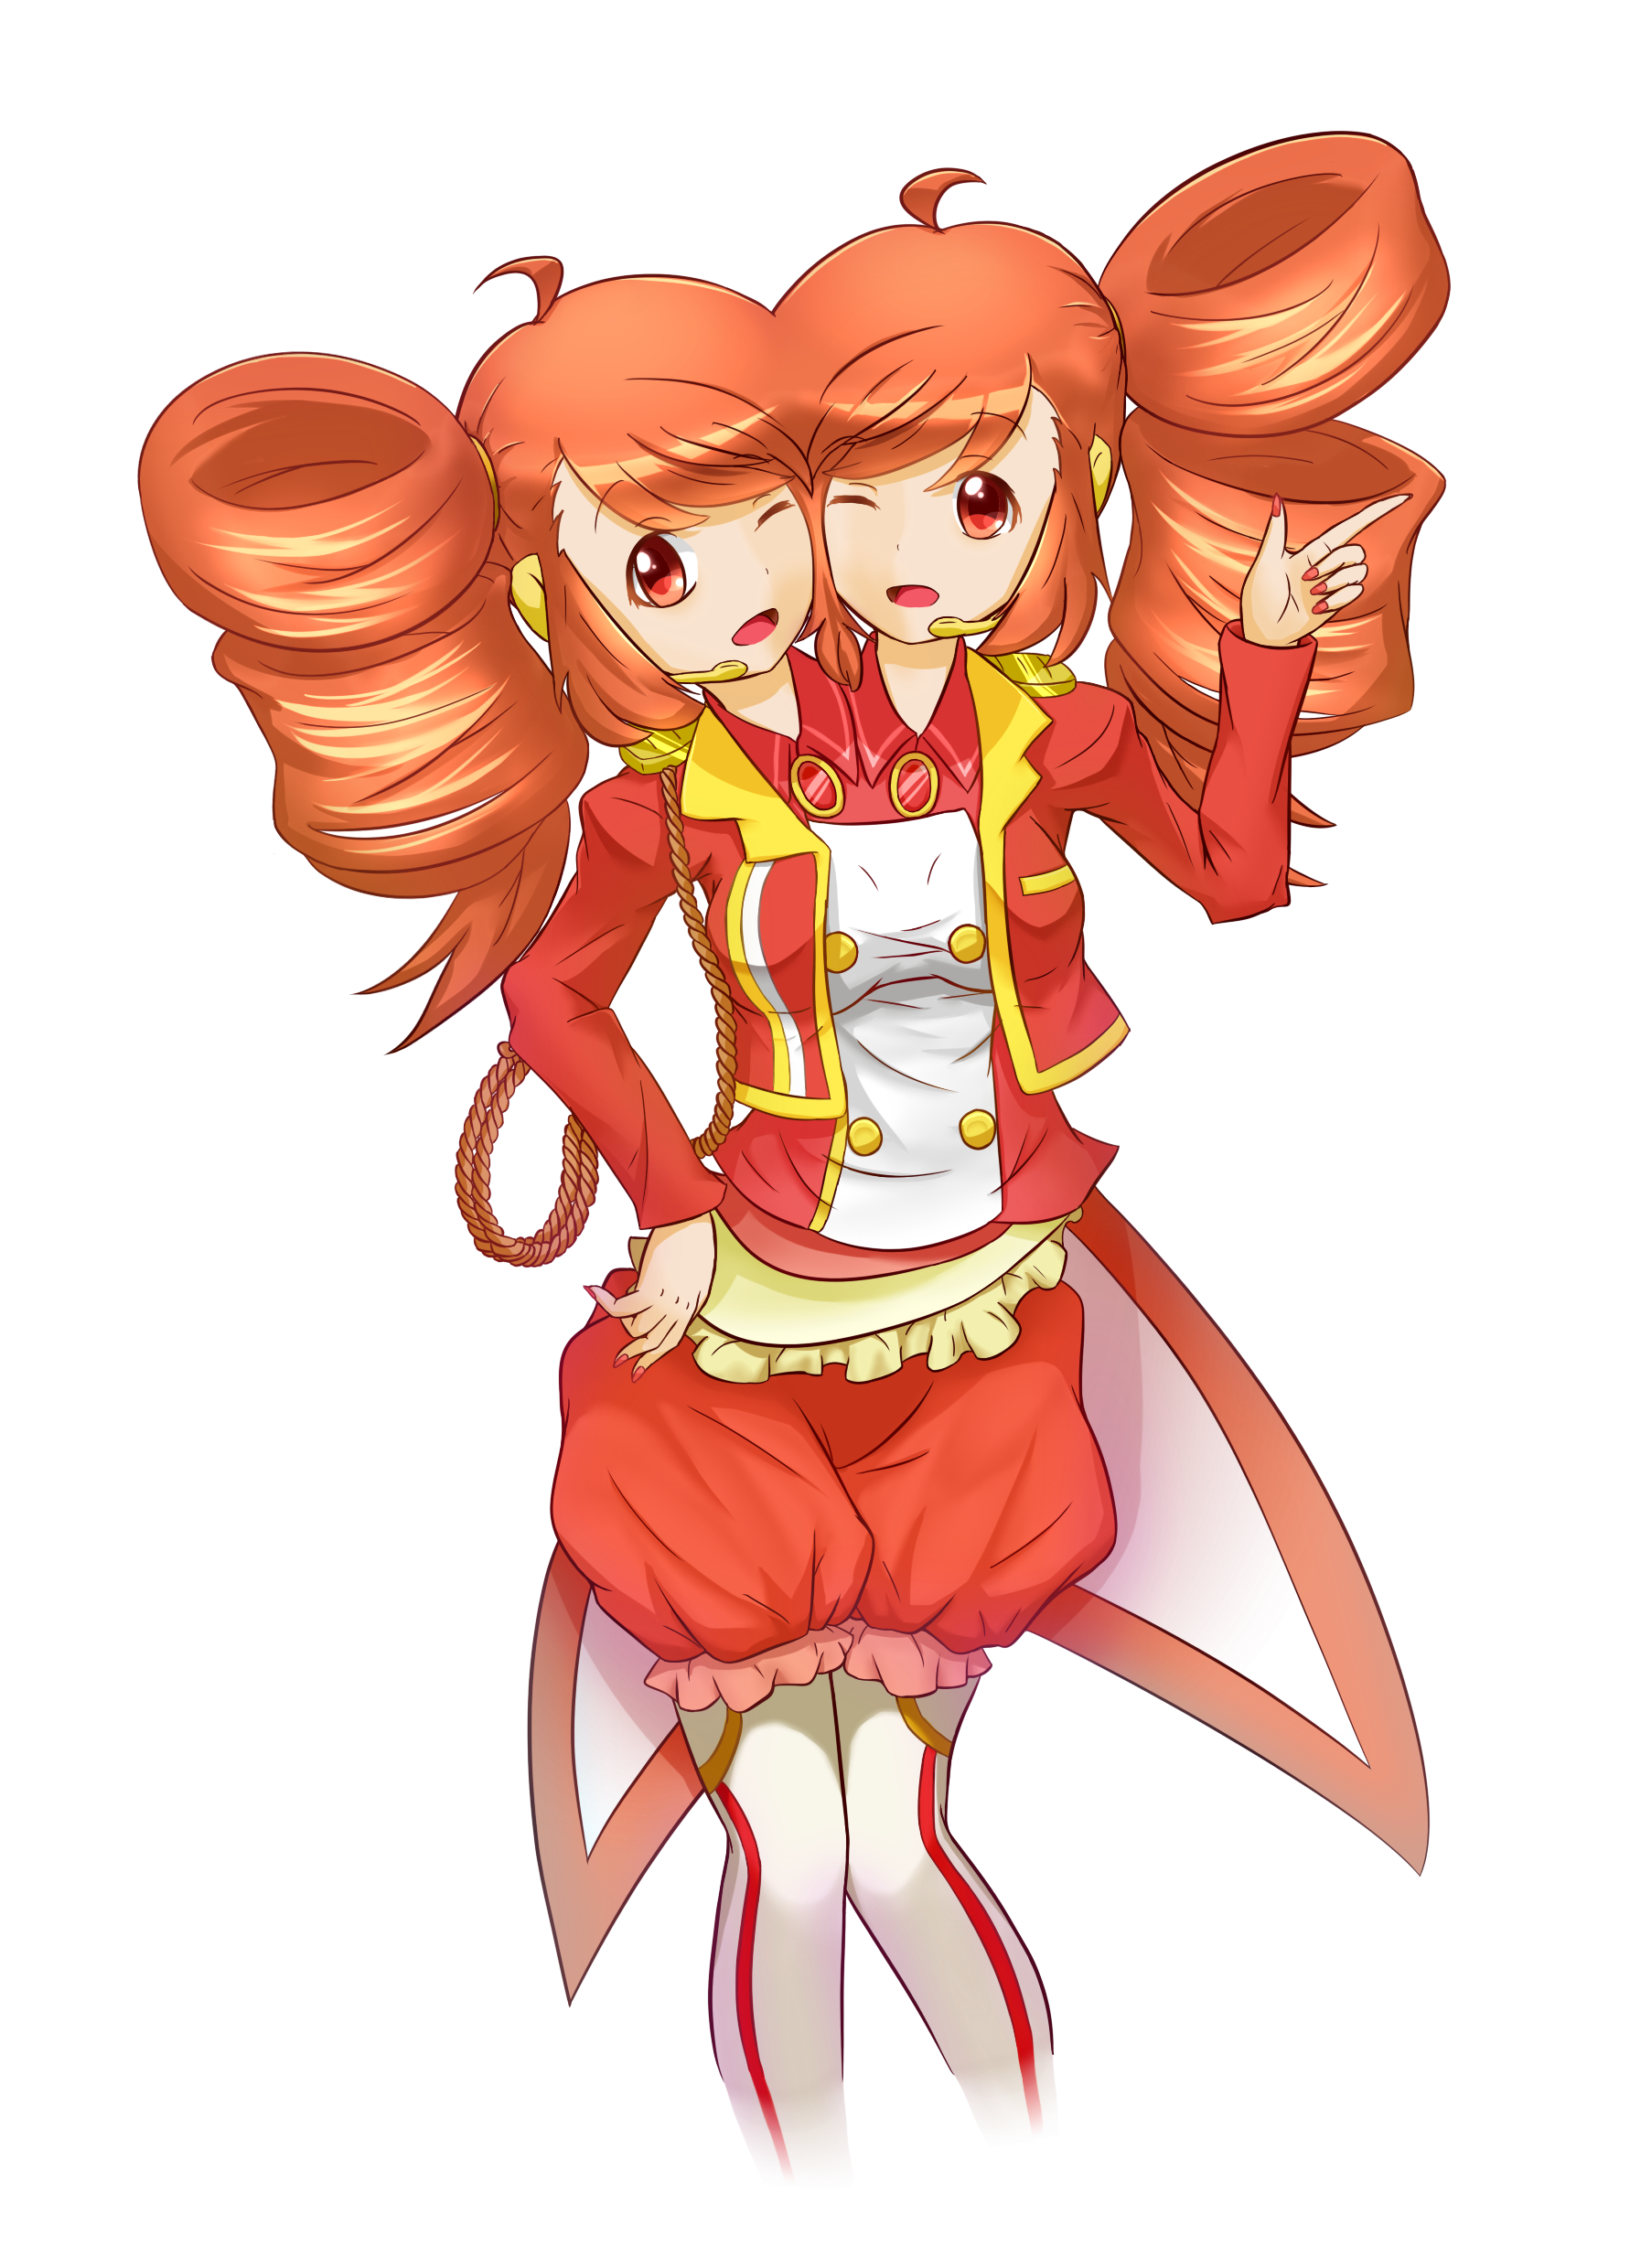 Namami The Two Headed Idol by jim830928 on DeviantArt